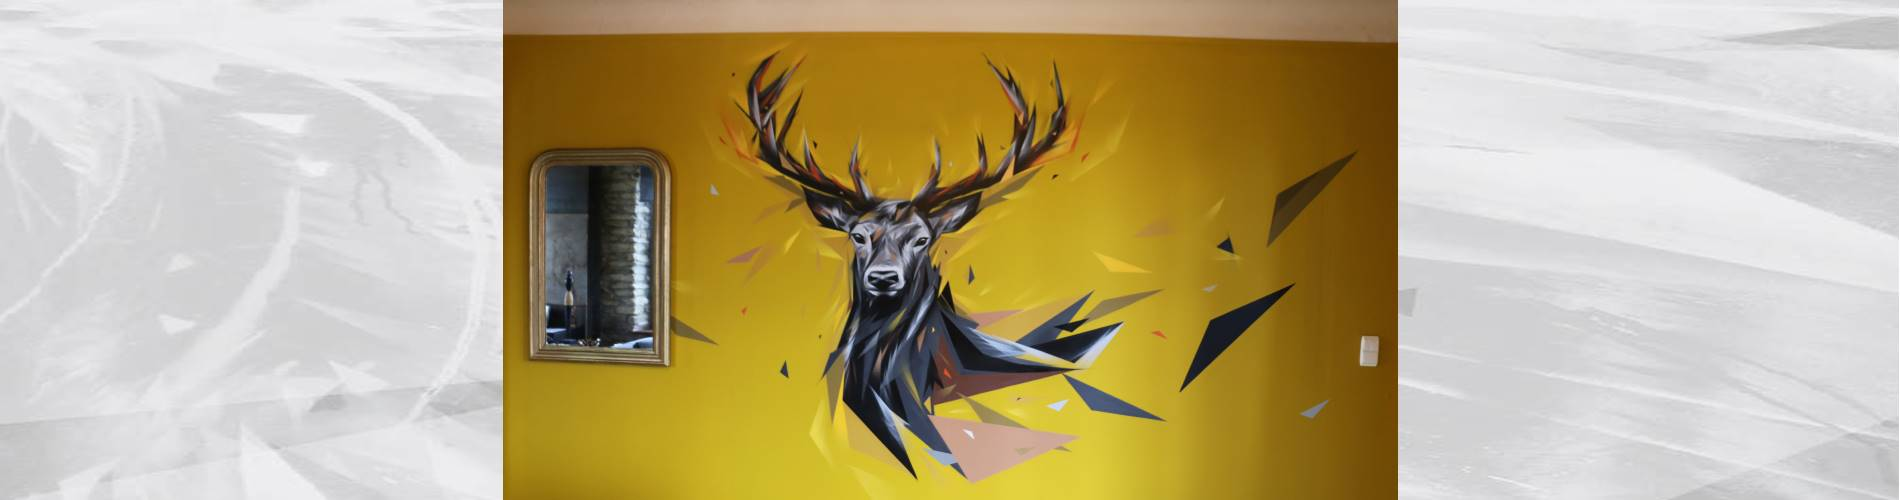 street art arlon deer